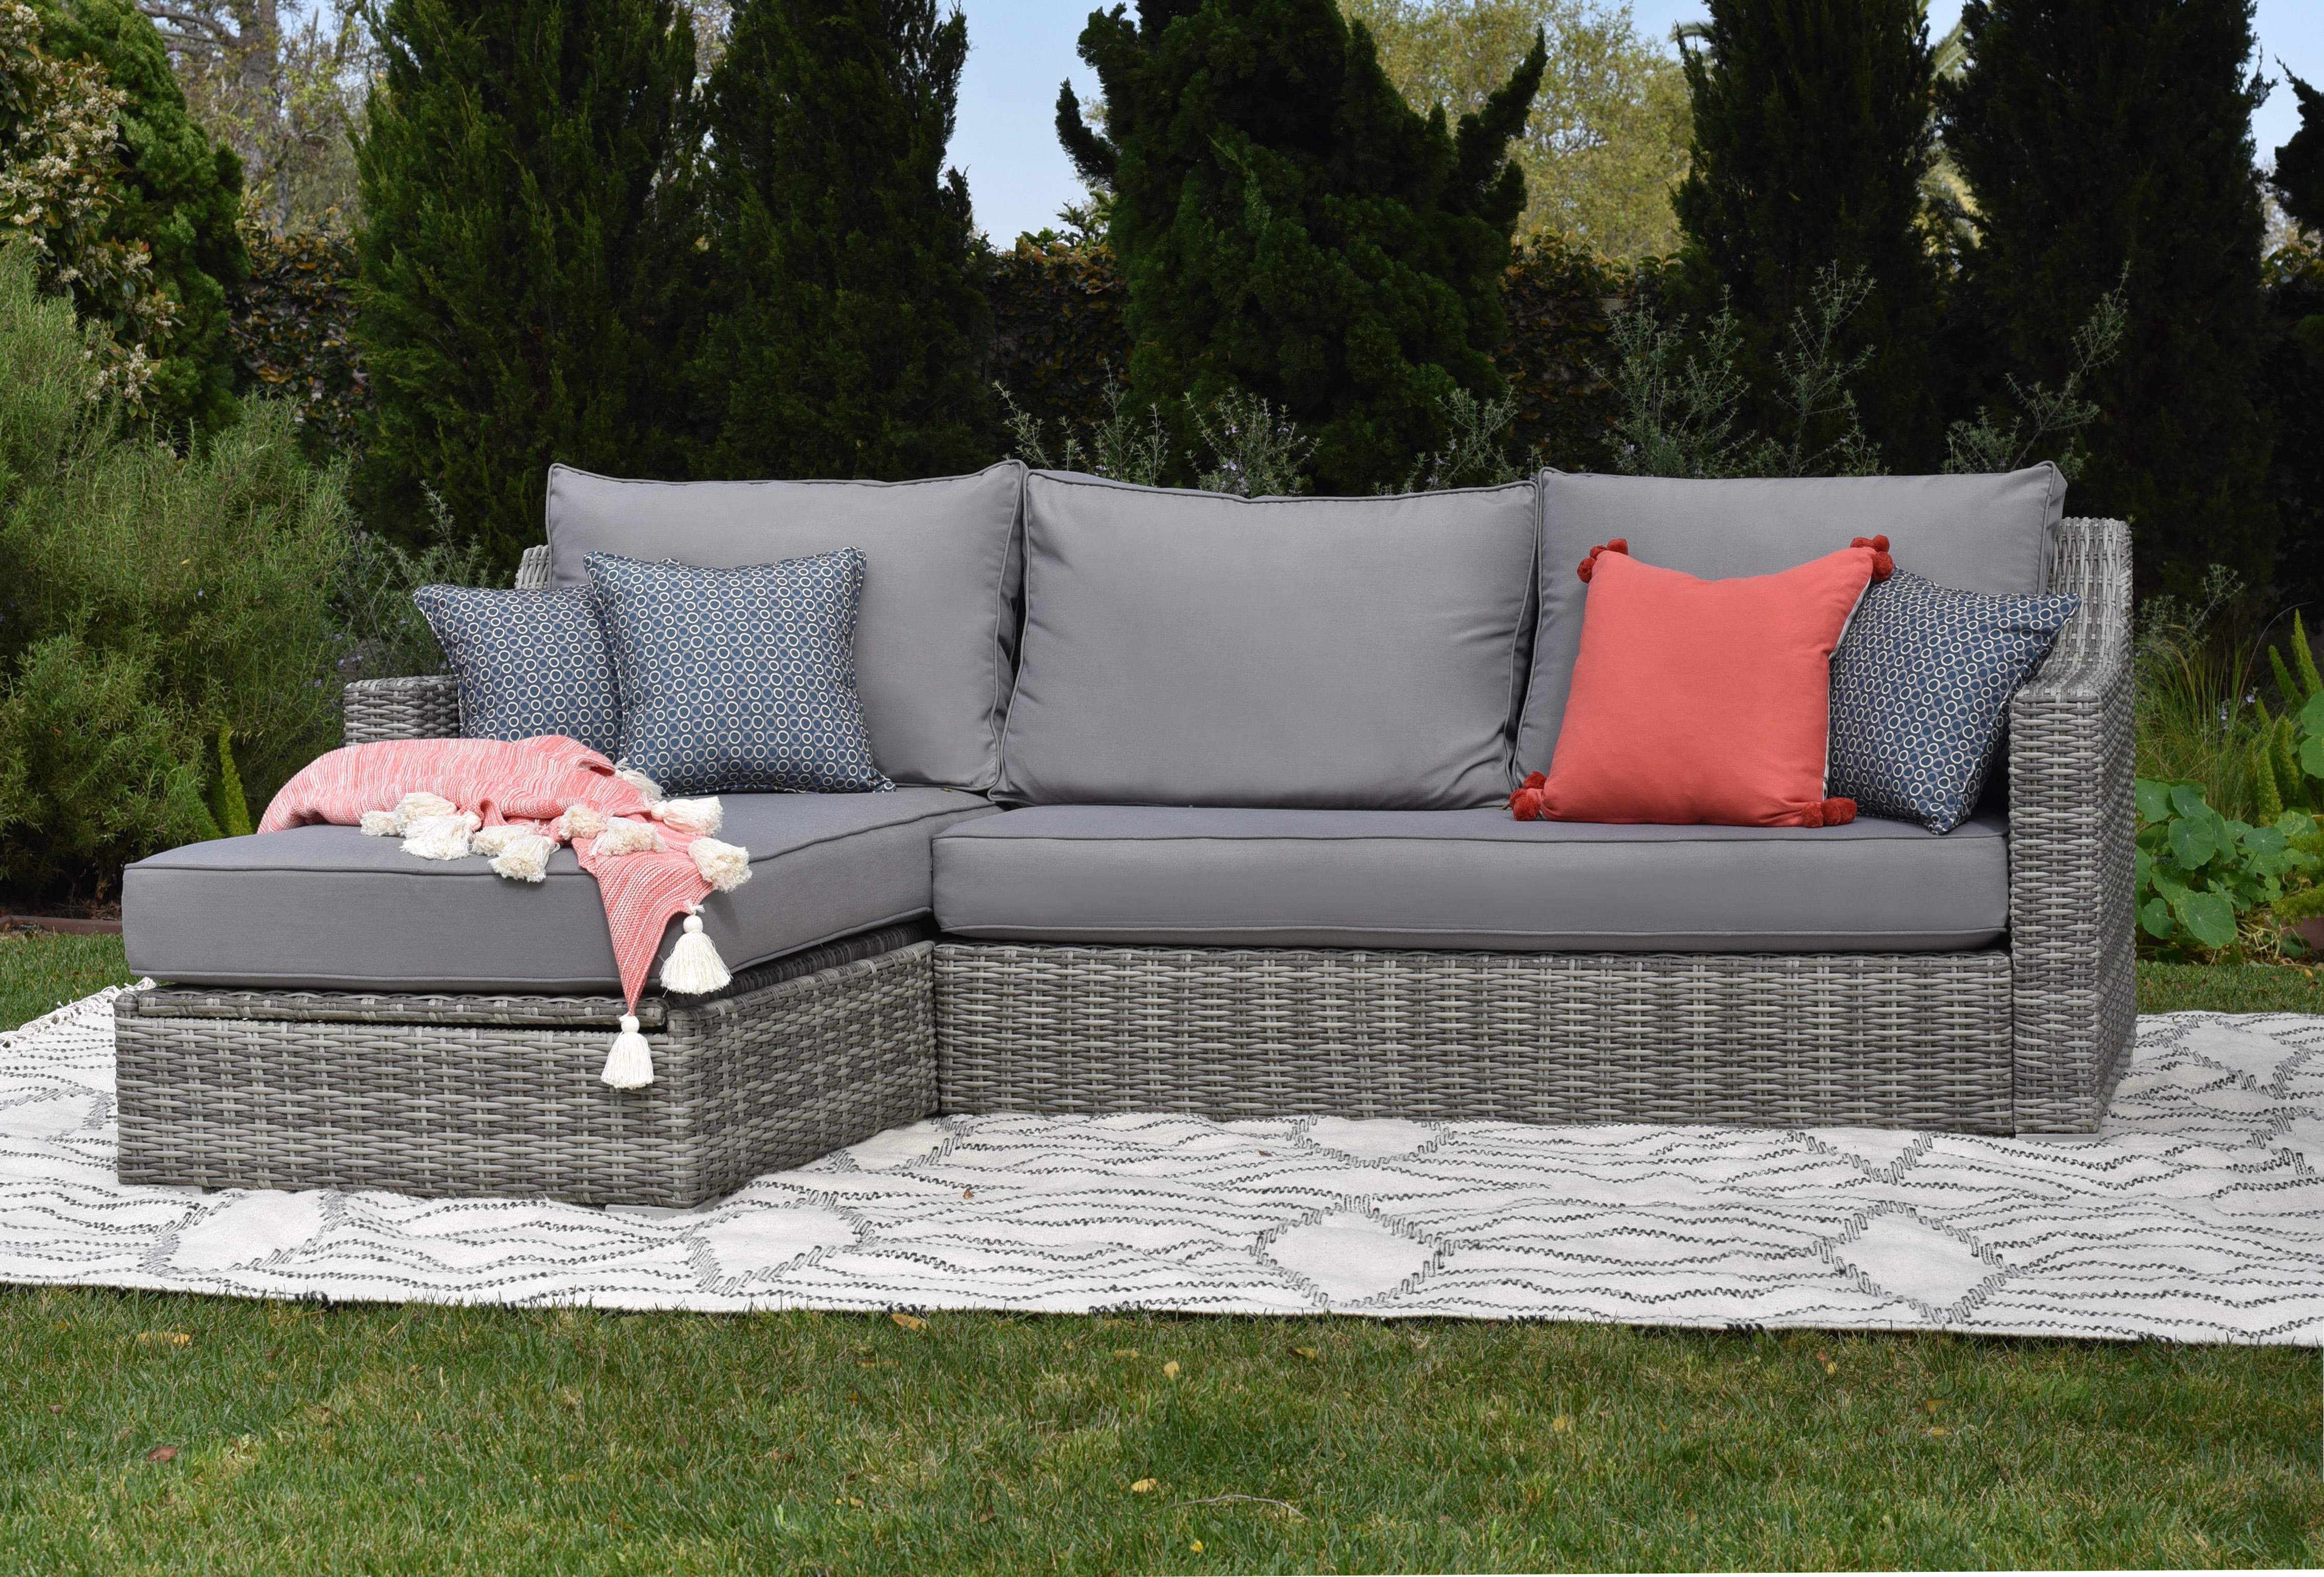 Vallauris Sofa With Cushions Intended For Well Liked Vallauris Storage Patio Sectional With Cushions (View 17 of 20)